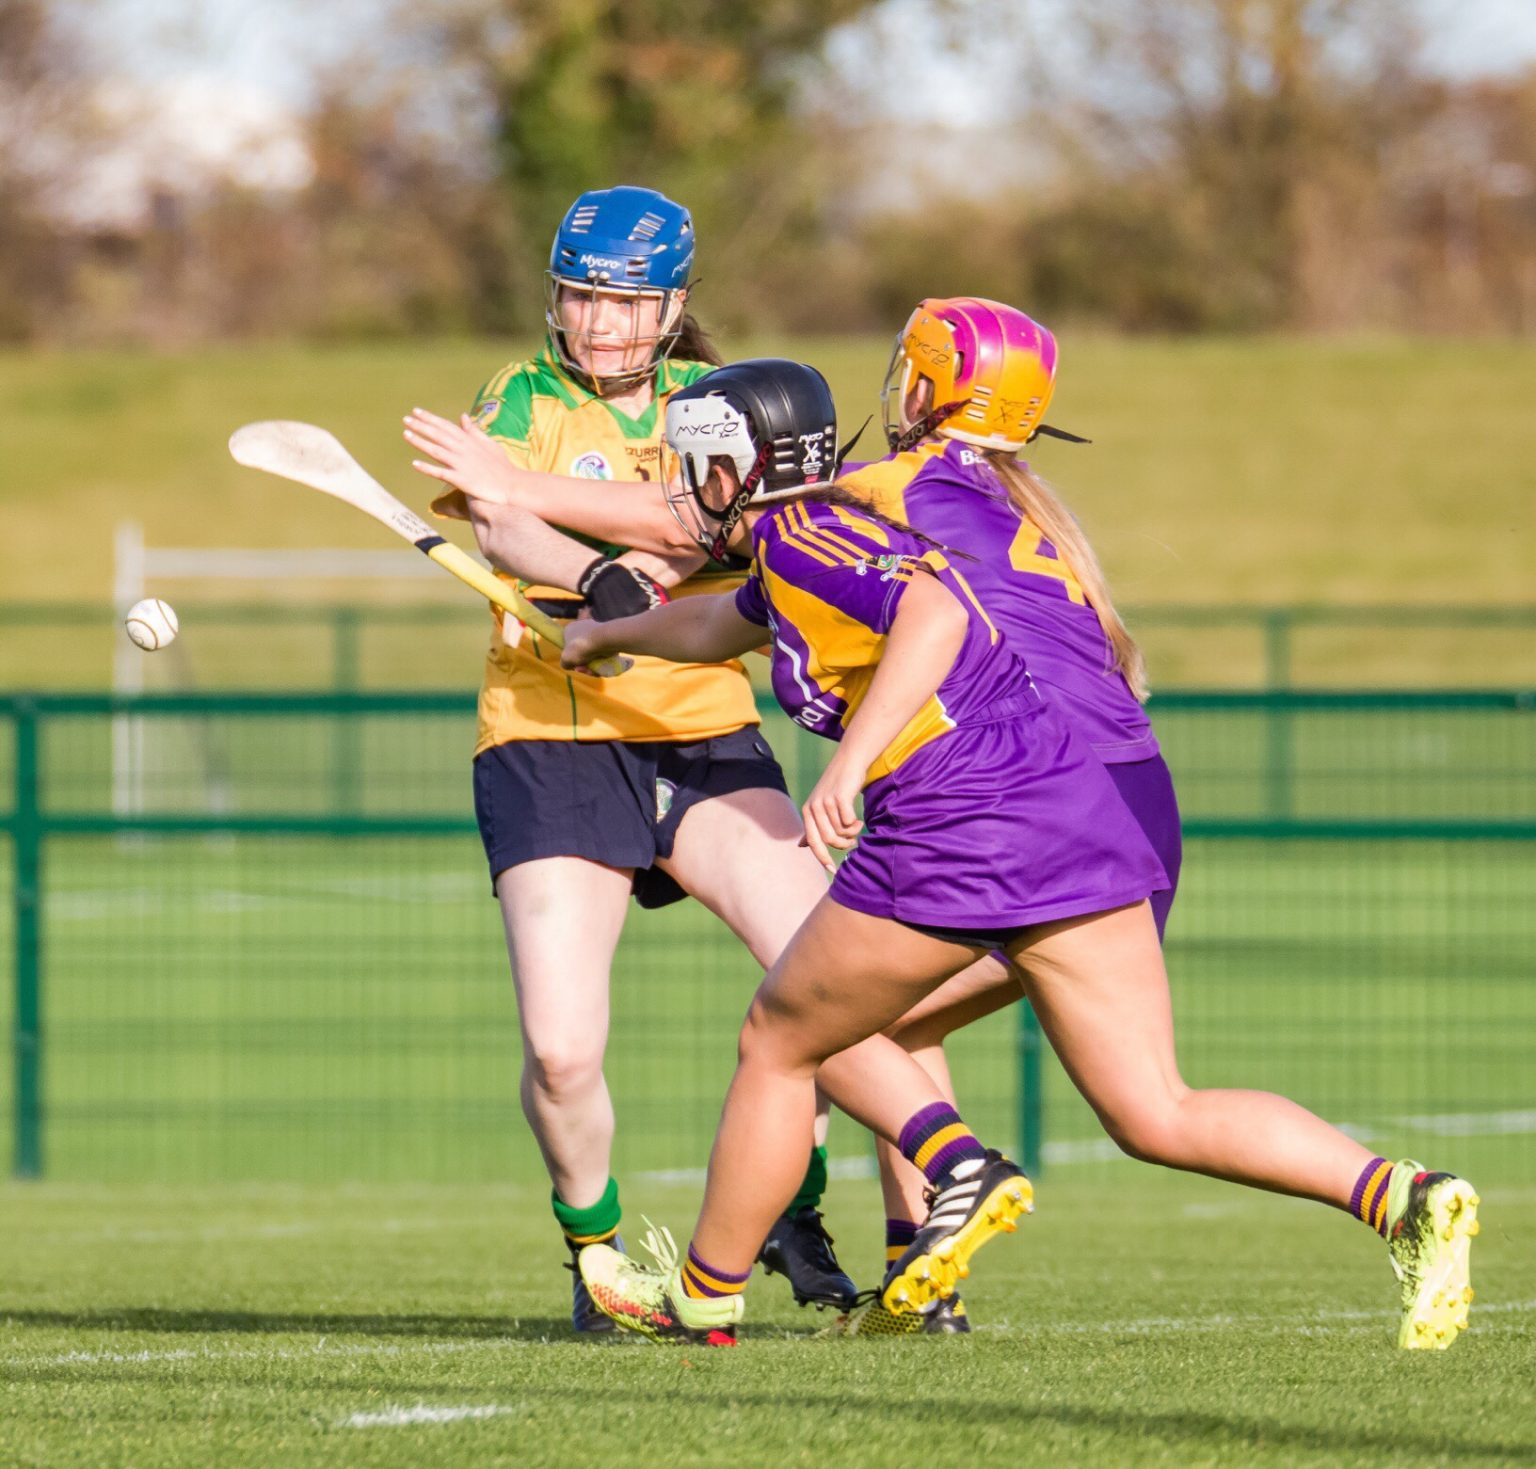 Two Kilmacud Crokes Players In purple and gold jerseys try to block the shot of a Faughs Celtic player in yellow and green jersey during the senior 2 final